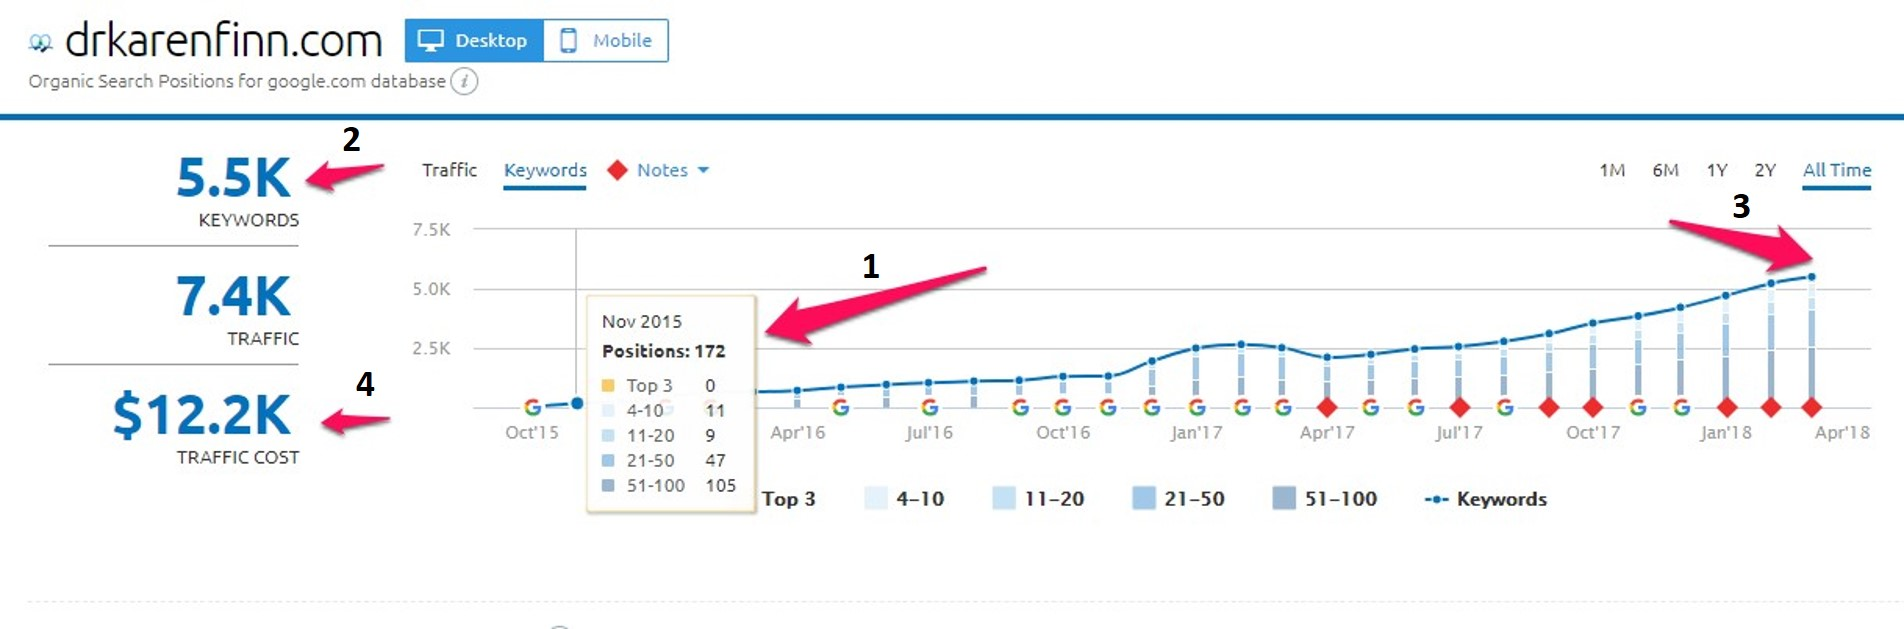 Case study image 4: Snapshot from SEMR of the keyword growth of Karen's website.